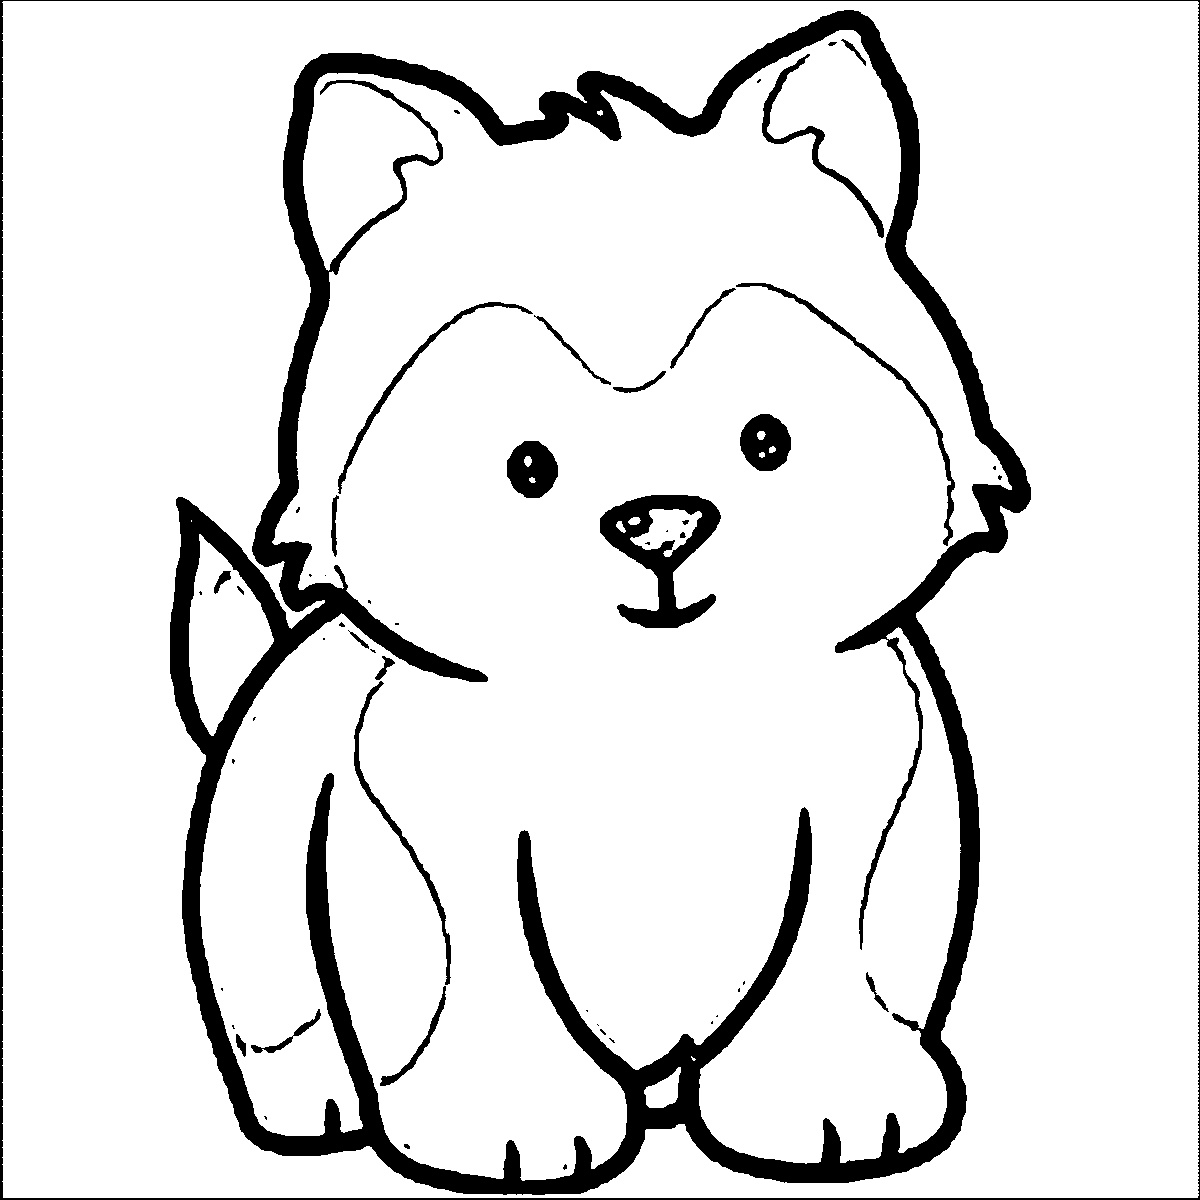 puppy pictures for coloring puppy outline coloring page coloring home pictures puppy for coloring